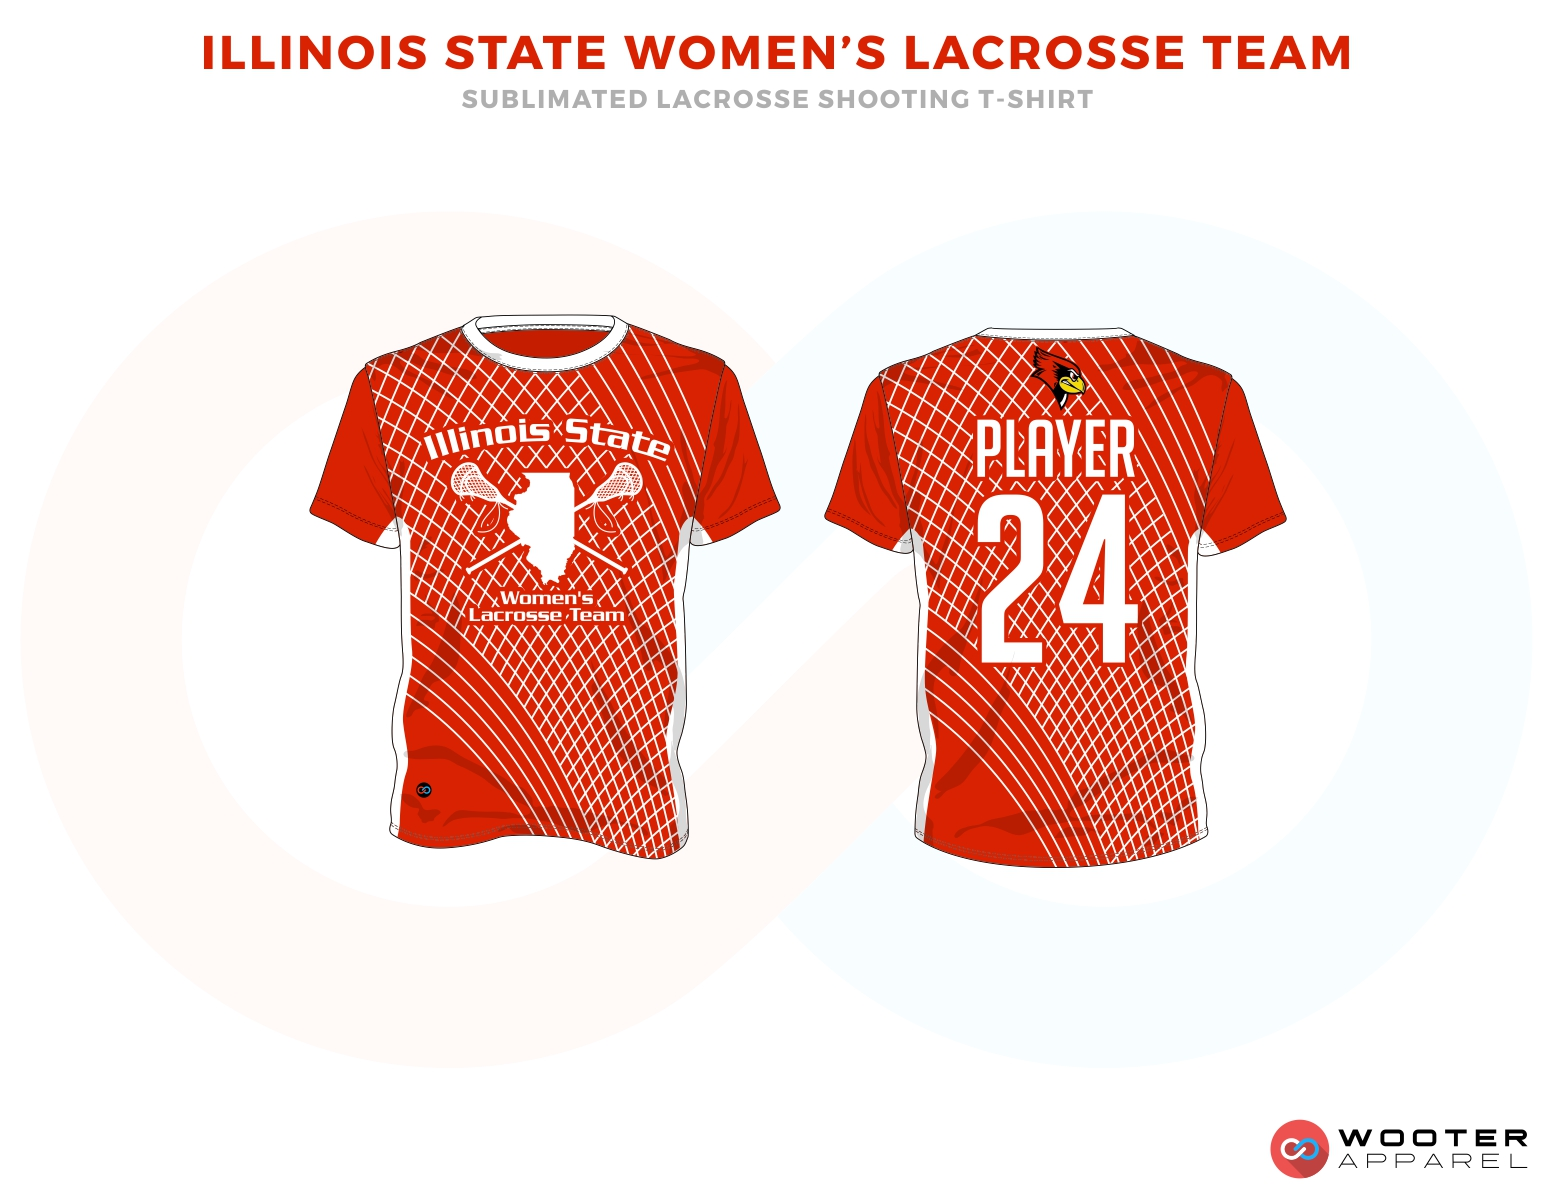 Illinois State Women's Lacrosse Team Red and White Lacrosse T Shirts, Uniforms, Reversible Pinnies, Jerseys